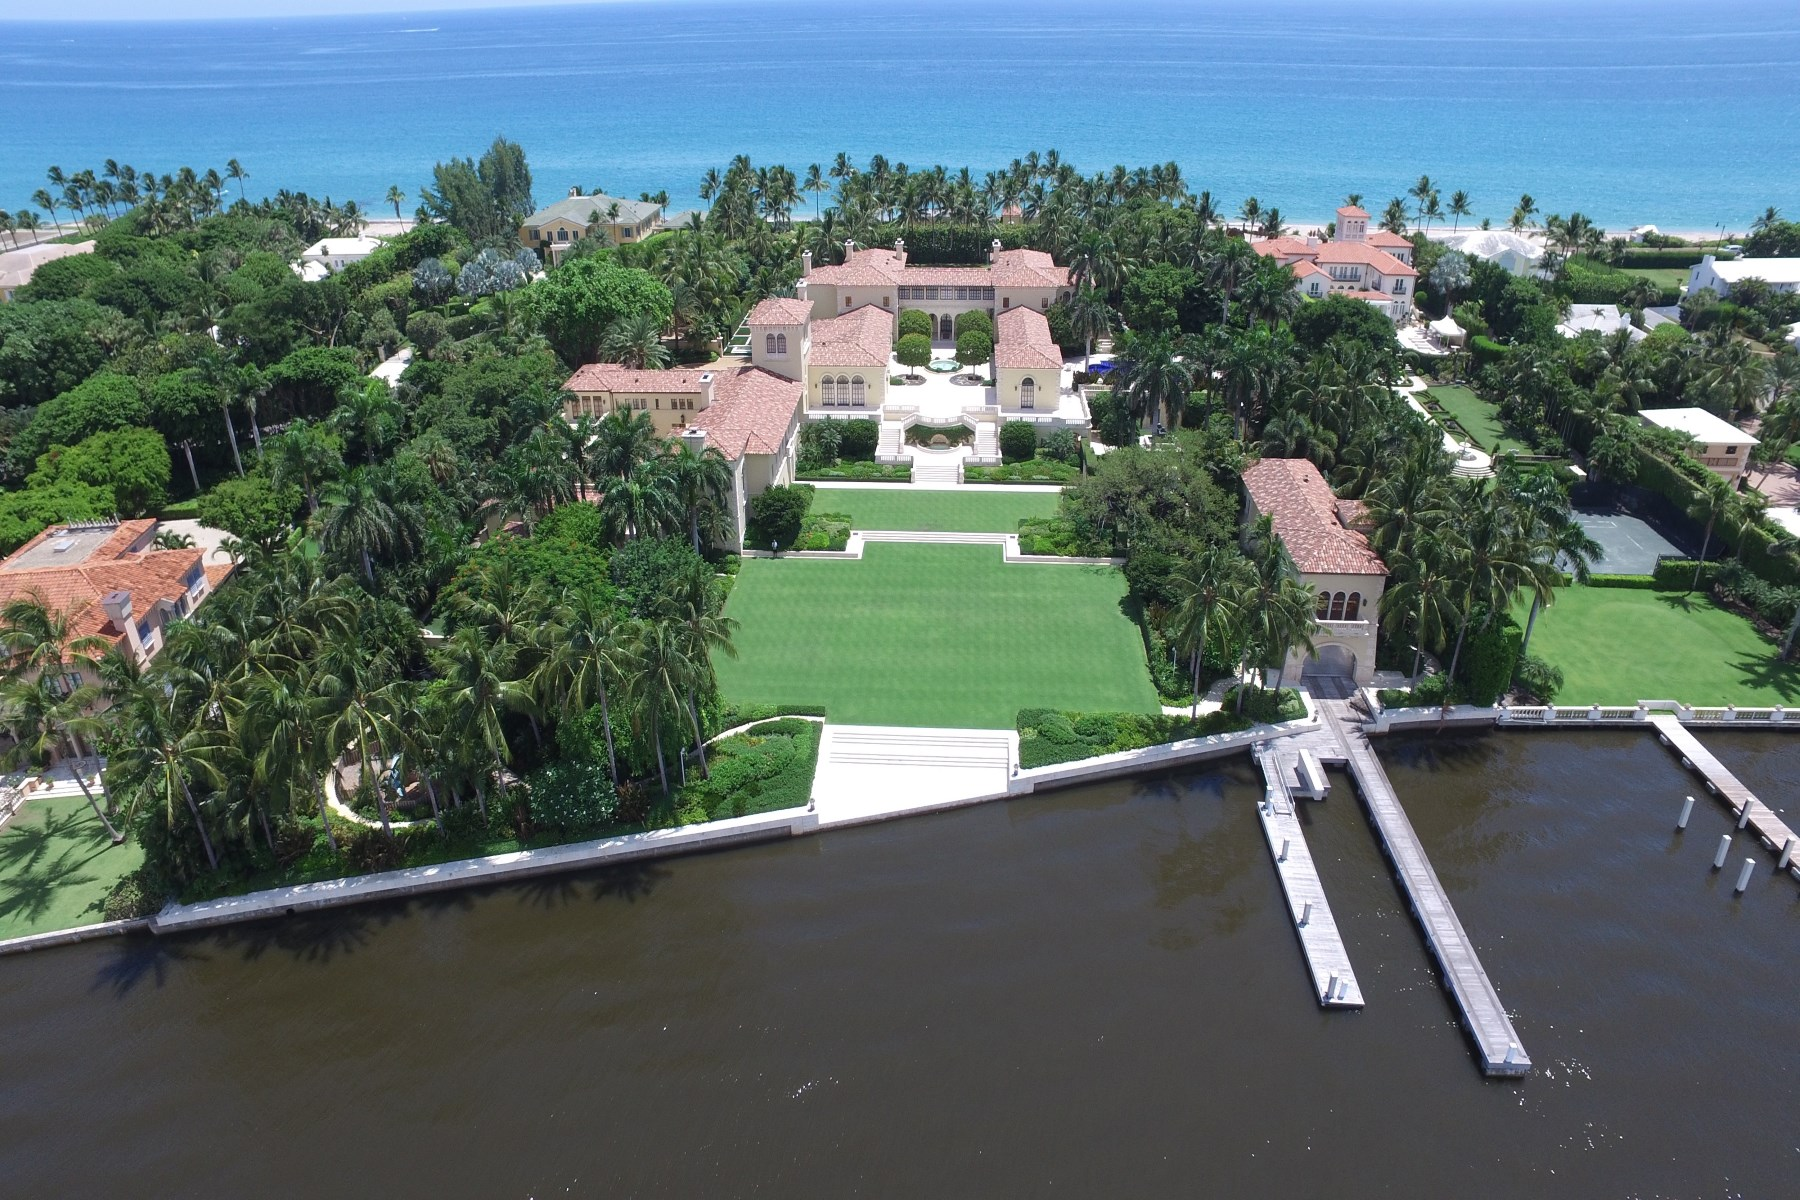 Maison unifamiliale pour l Vente à II Pametto Estate Section, Palm Beach, Florida, 33480 États-Unis